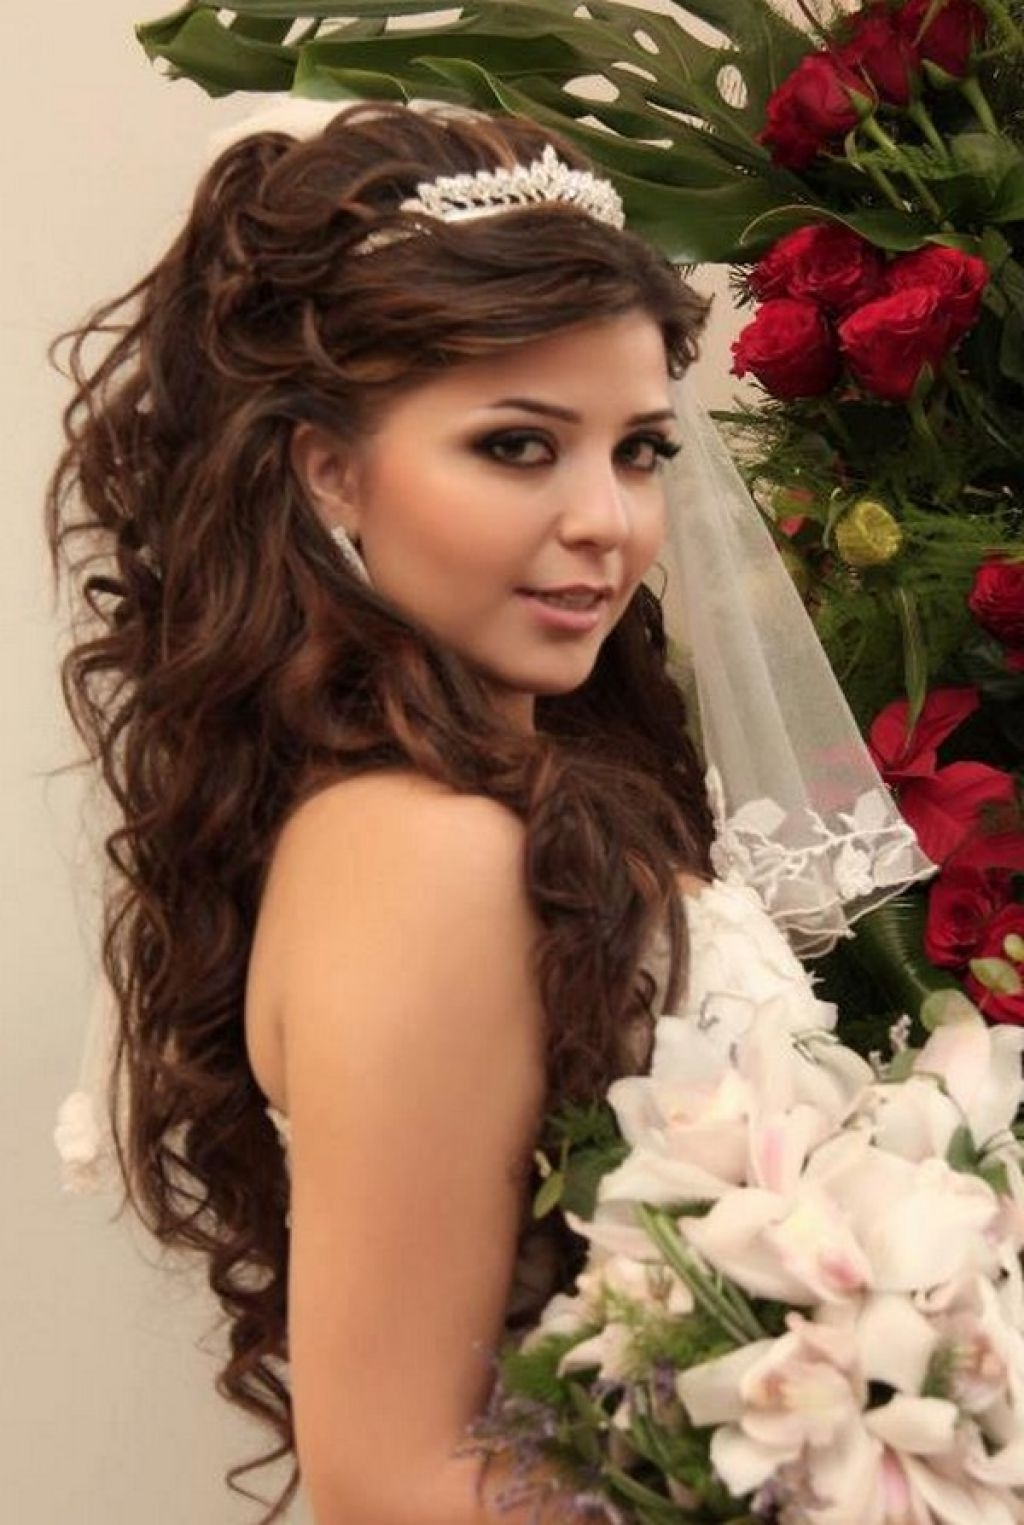 Wedding Hairstyle For Long Curly Dark Hair 50Th Anniversary Cakes Inside 2018 Wedding Hairstyles For Long Hair With Tiara (View 10 of 15)